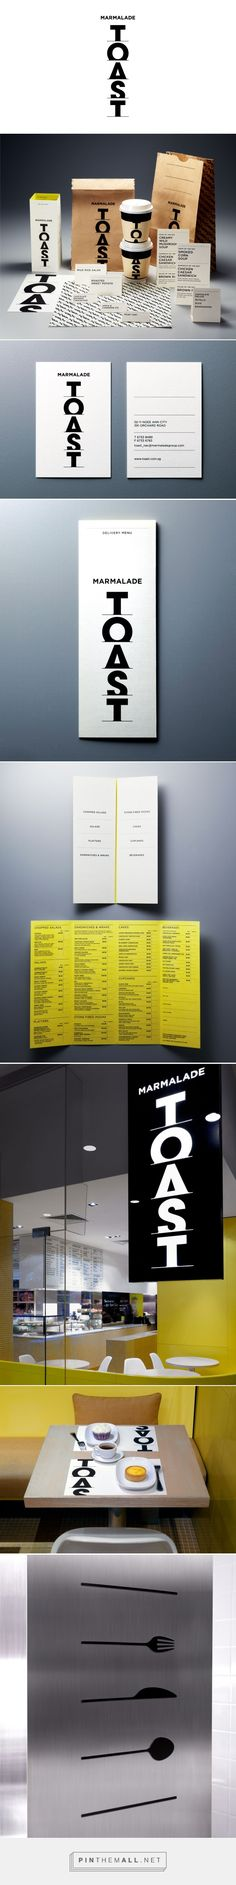 """&Larry packaging branding for the upmarket gourmet café previously known as """"Toast"""" curated by Packaging Diva PD. Definitely makes me want to go there."""